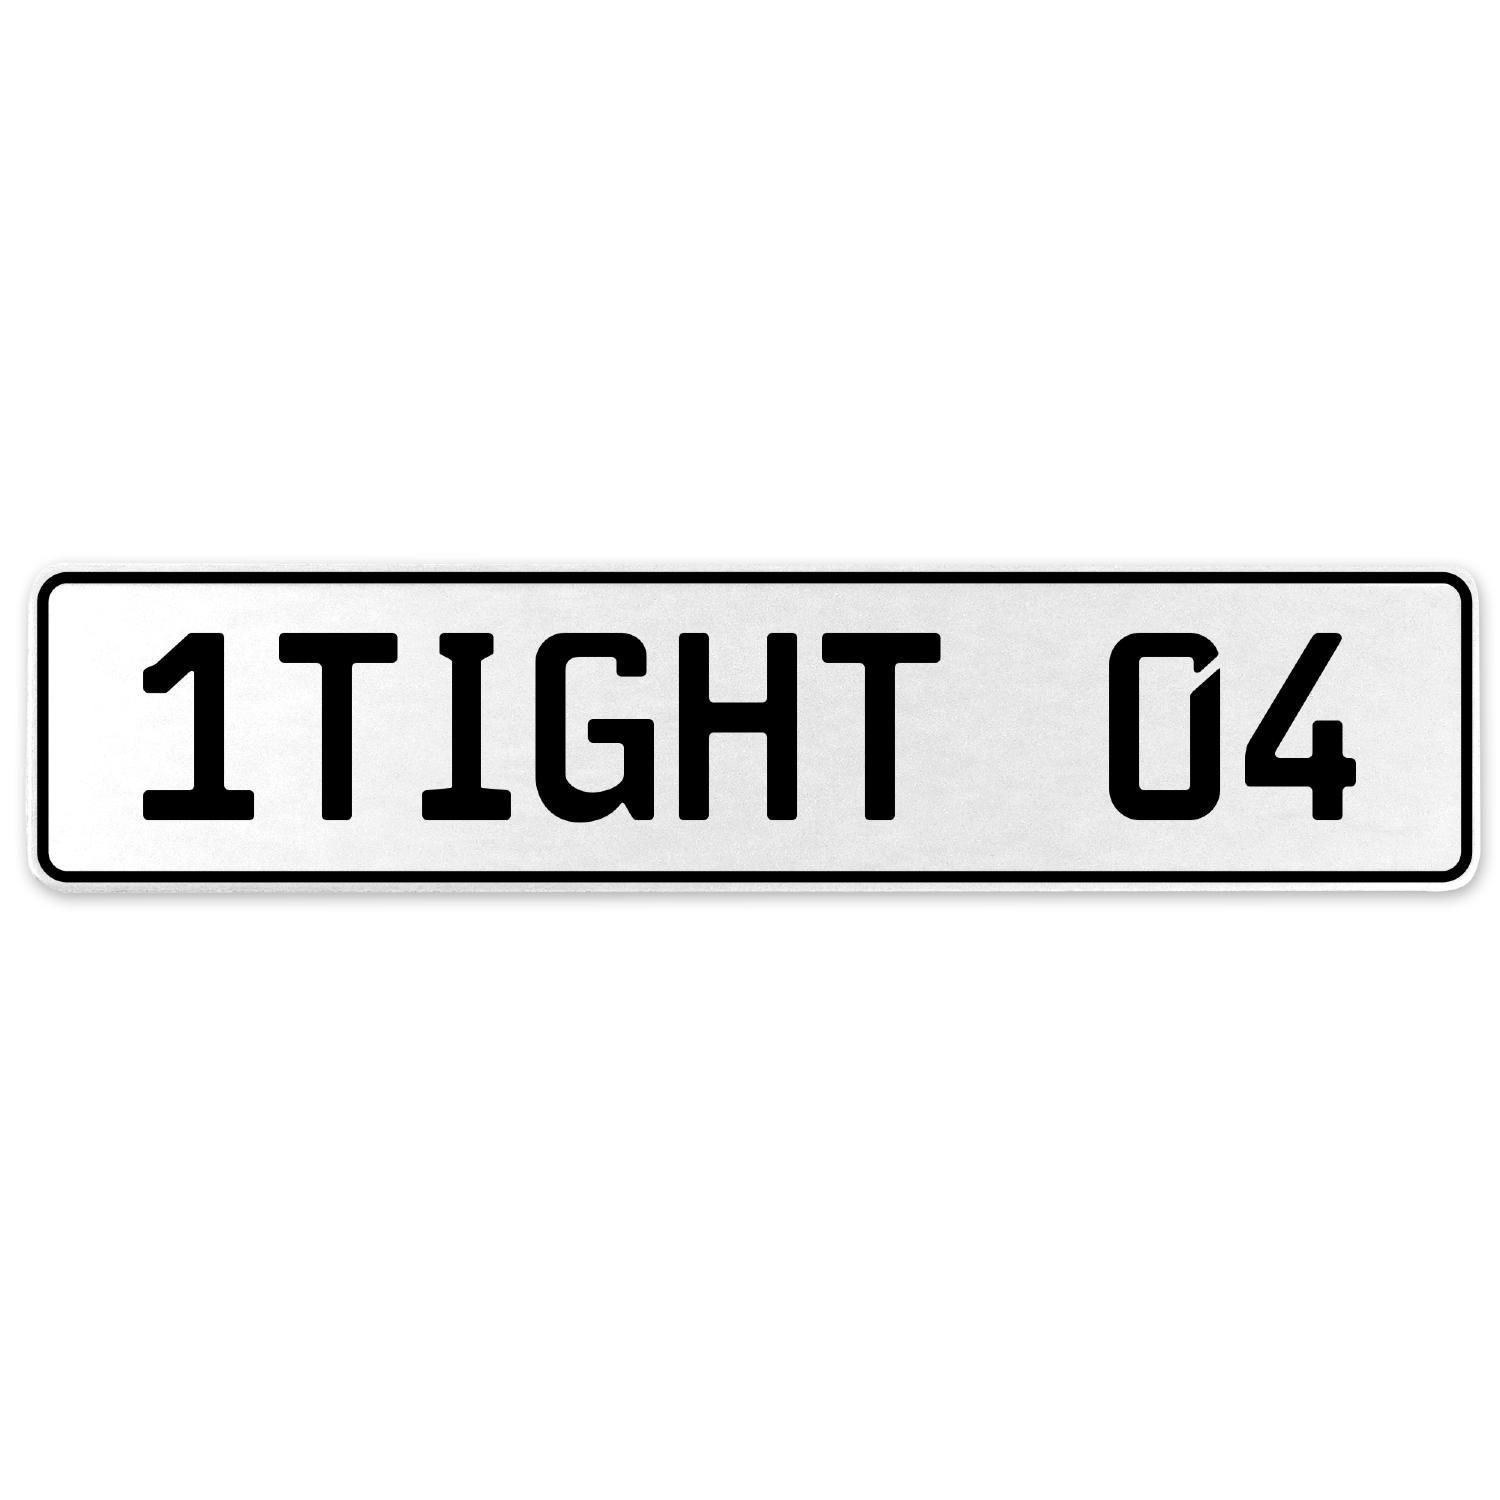 Vintage Parts 554799 1TIGHT 04 White Stamped Aluminum European License Plate